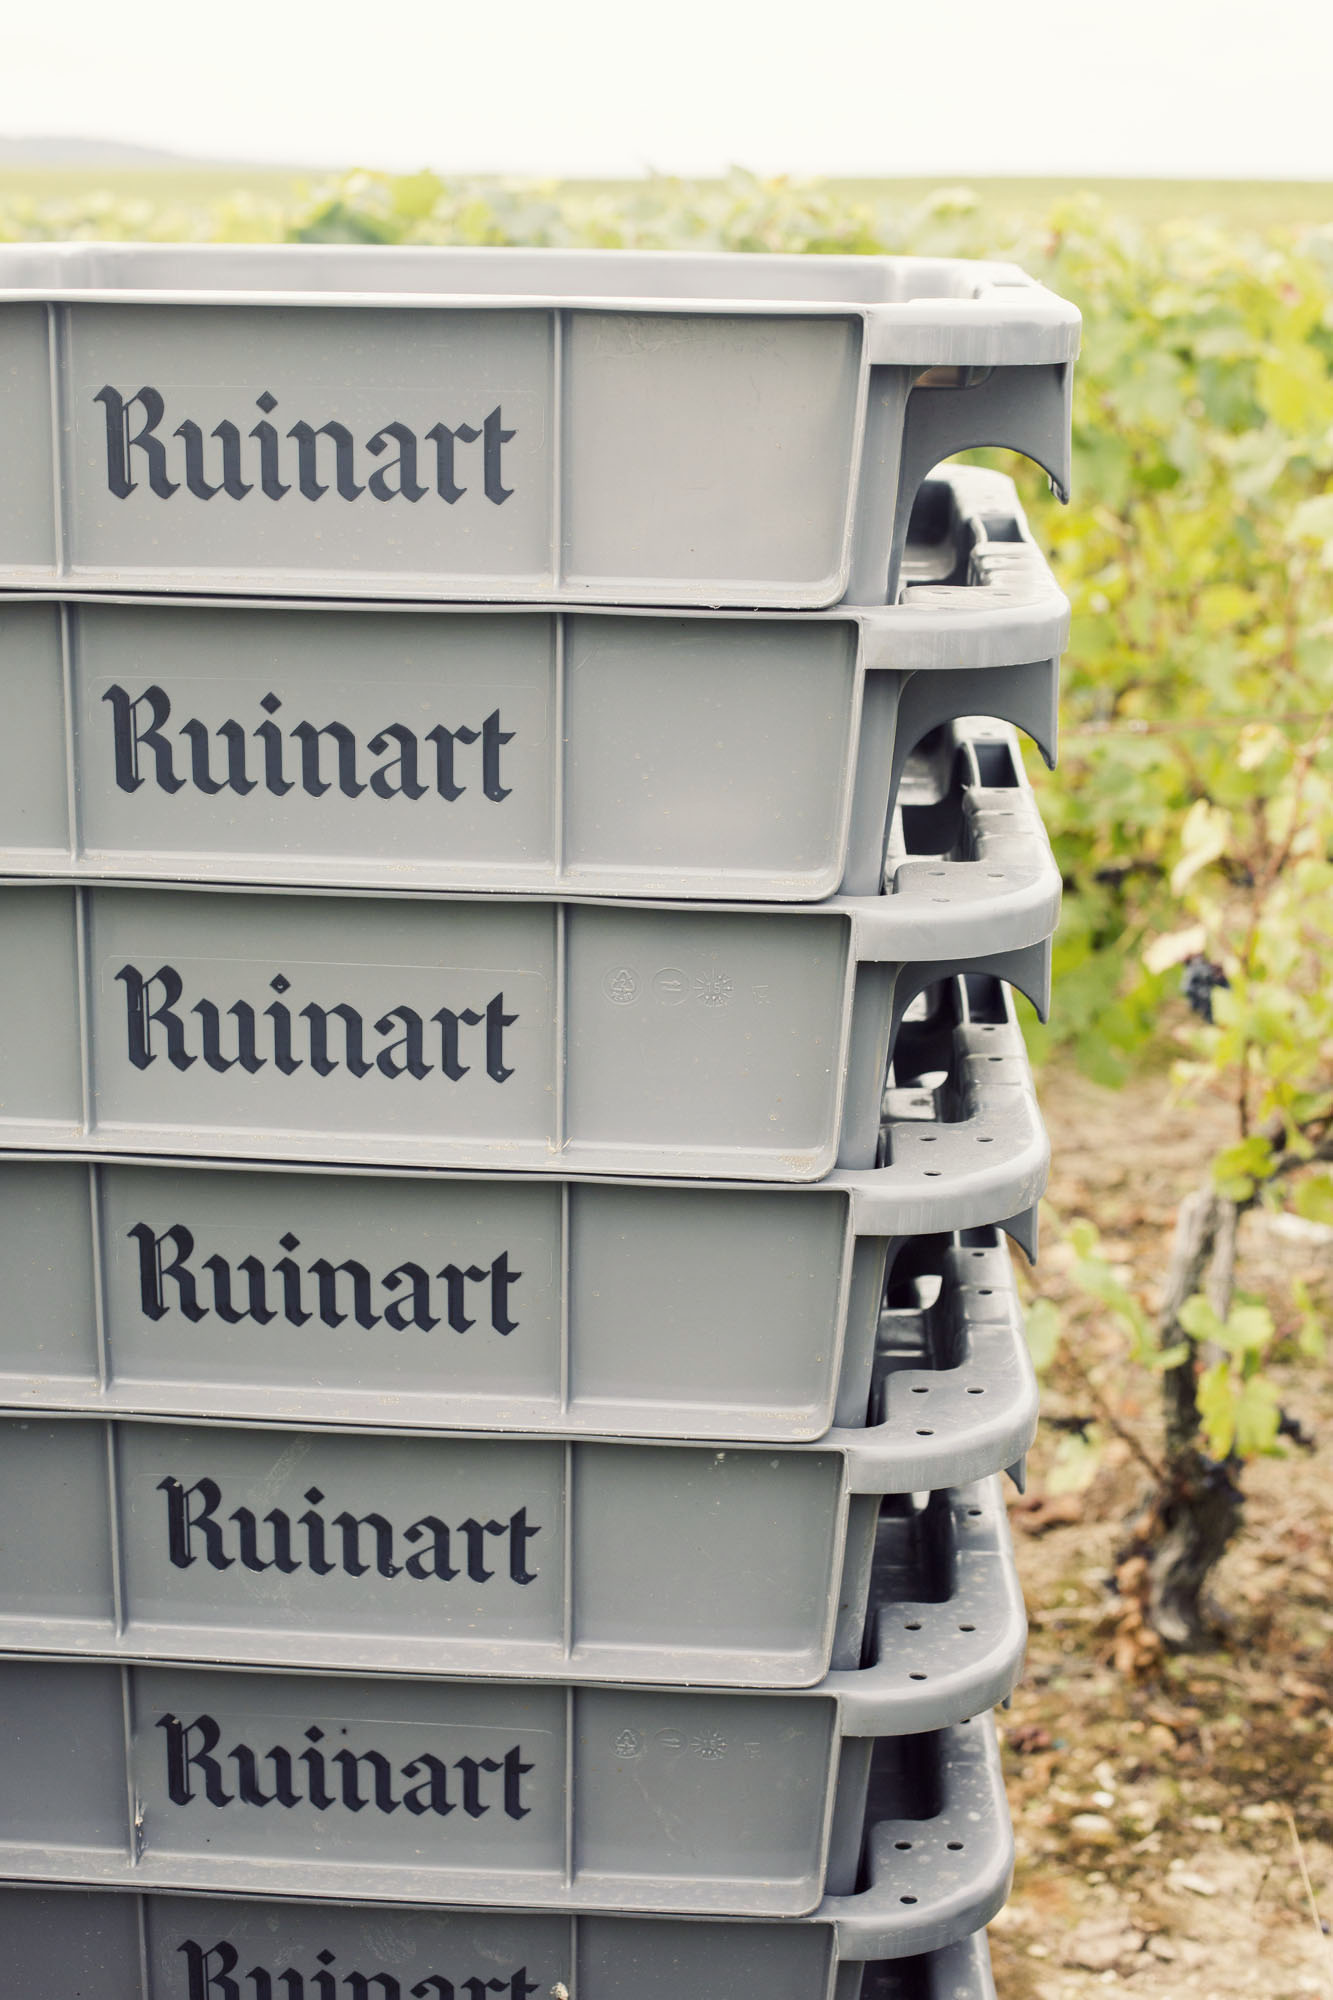 ruinart_champagne_harvest_008